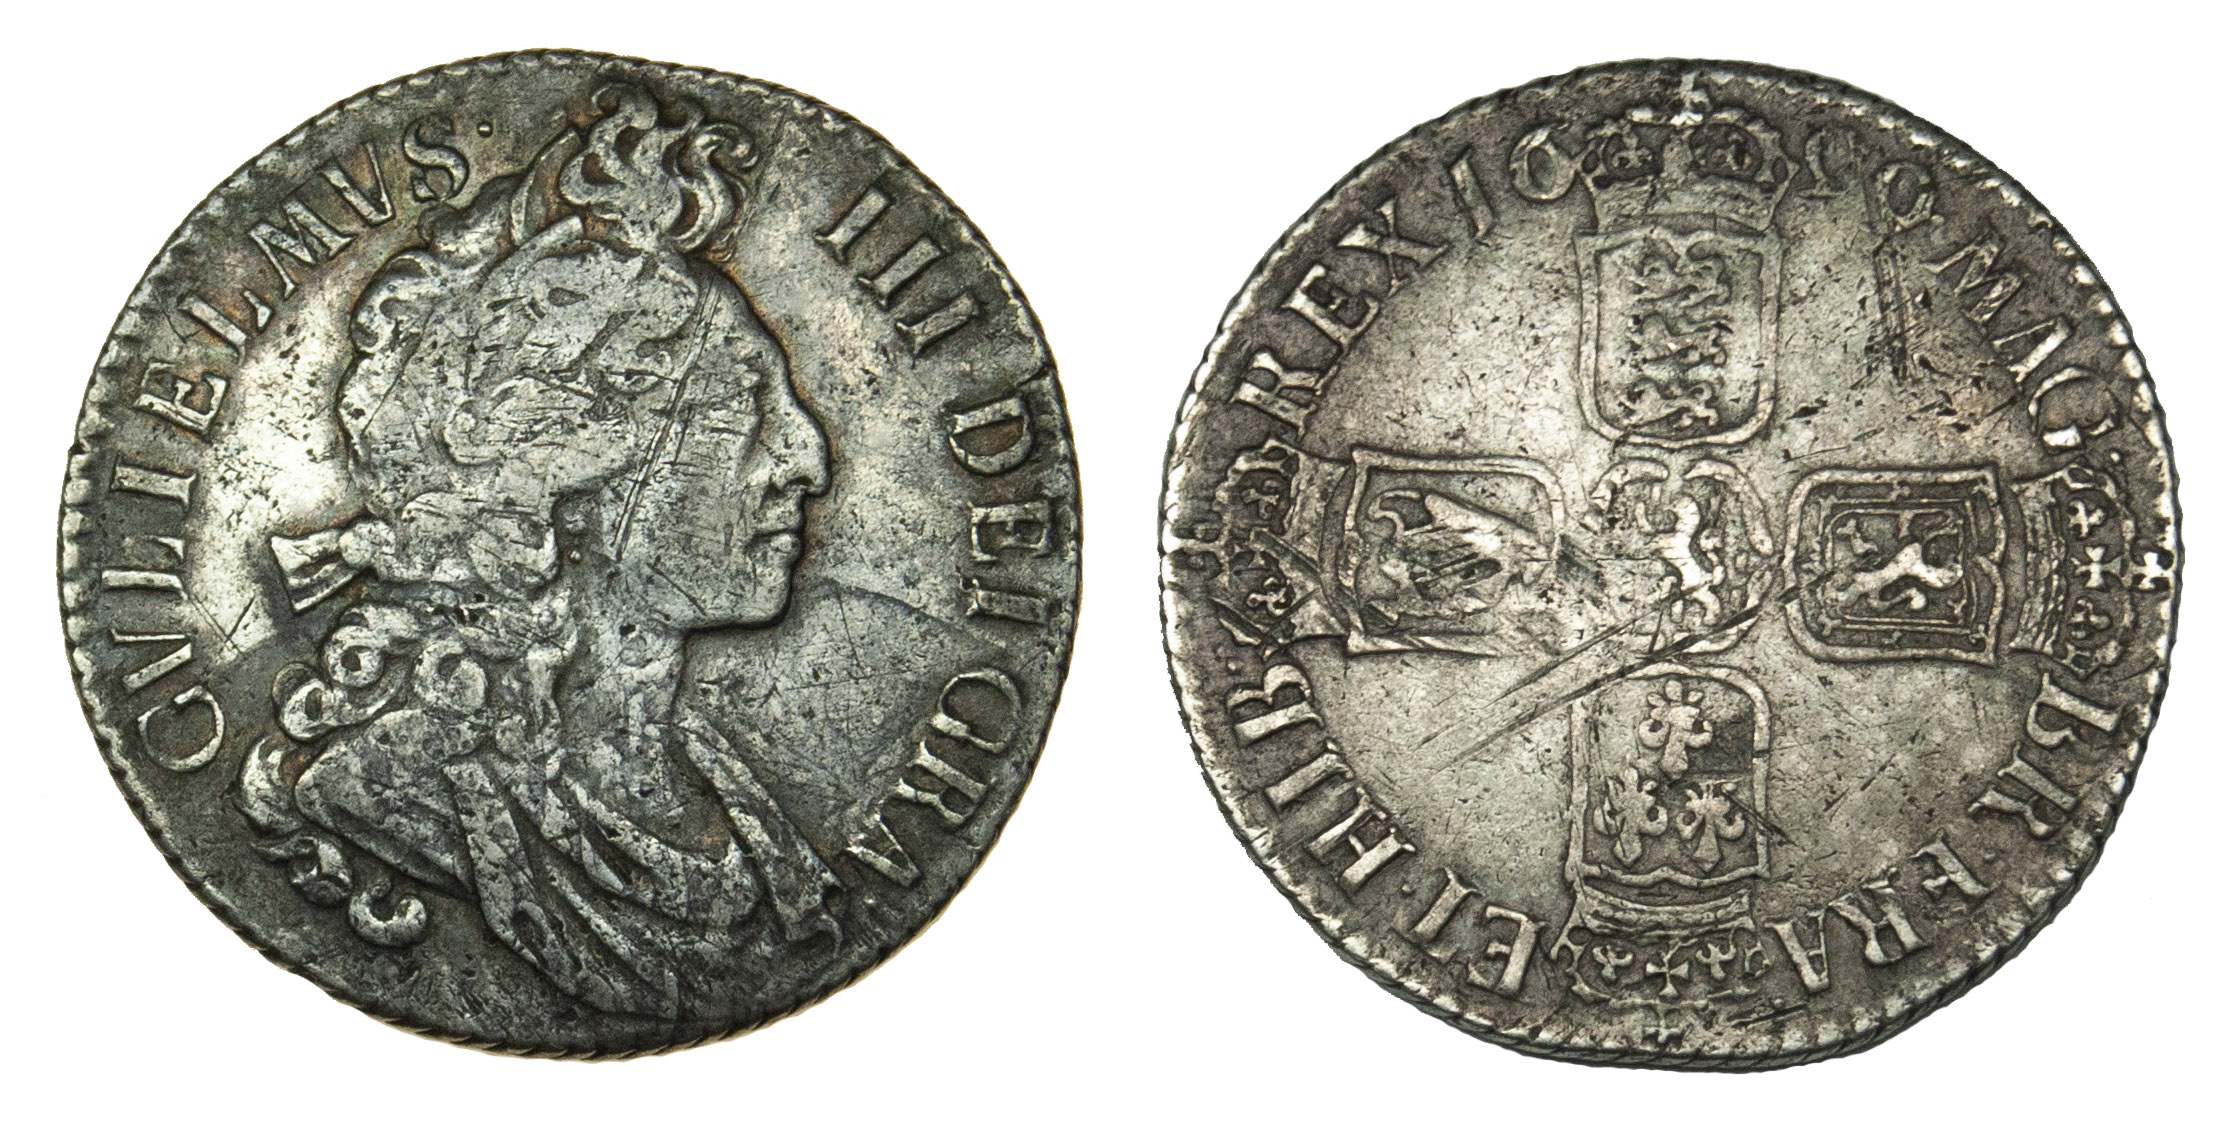 William III, 1699 Shilling (Flaming Hair)